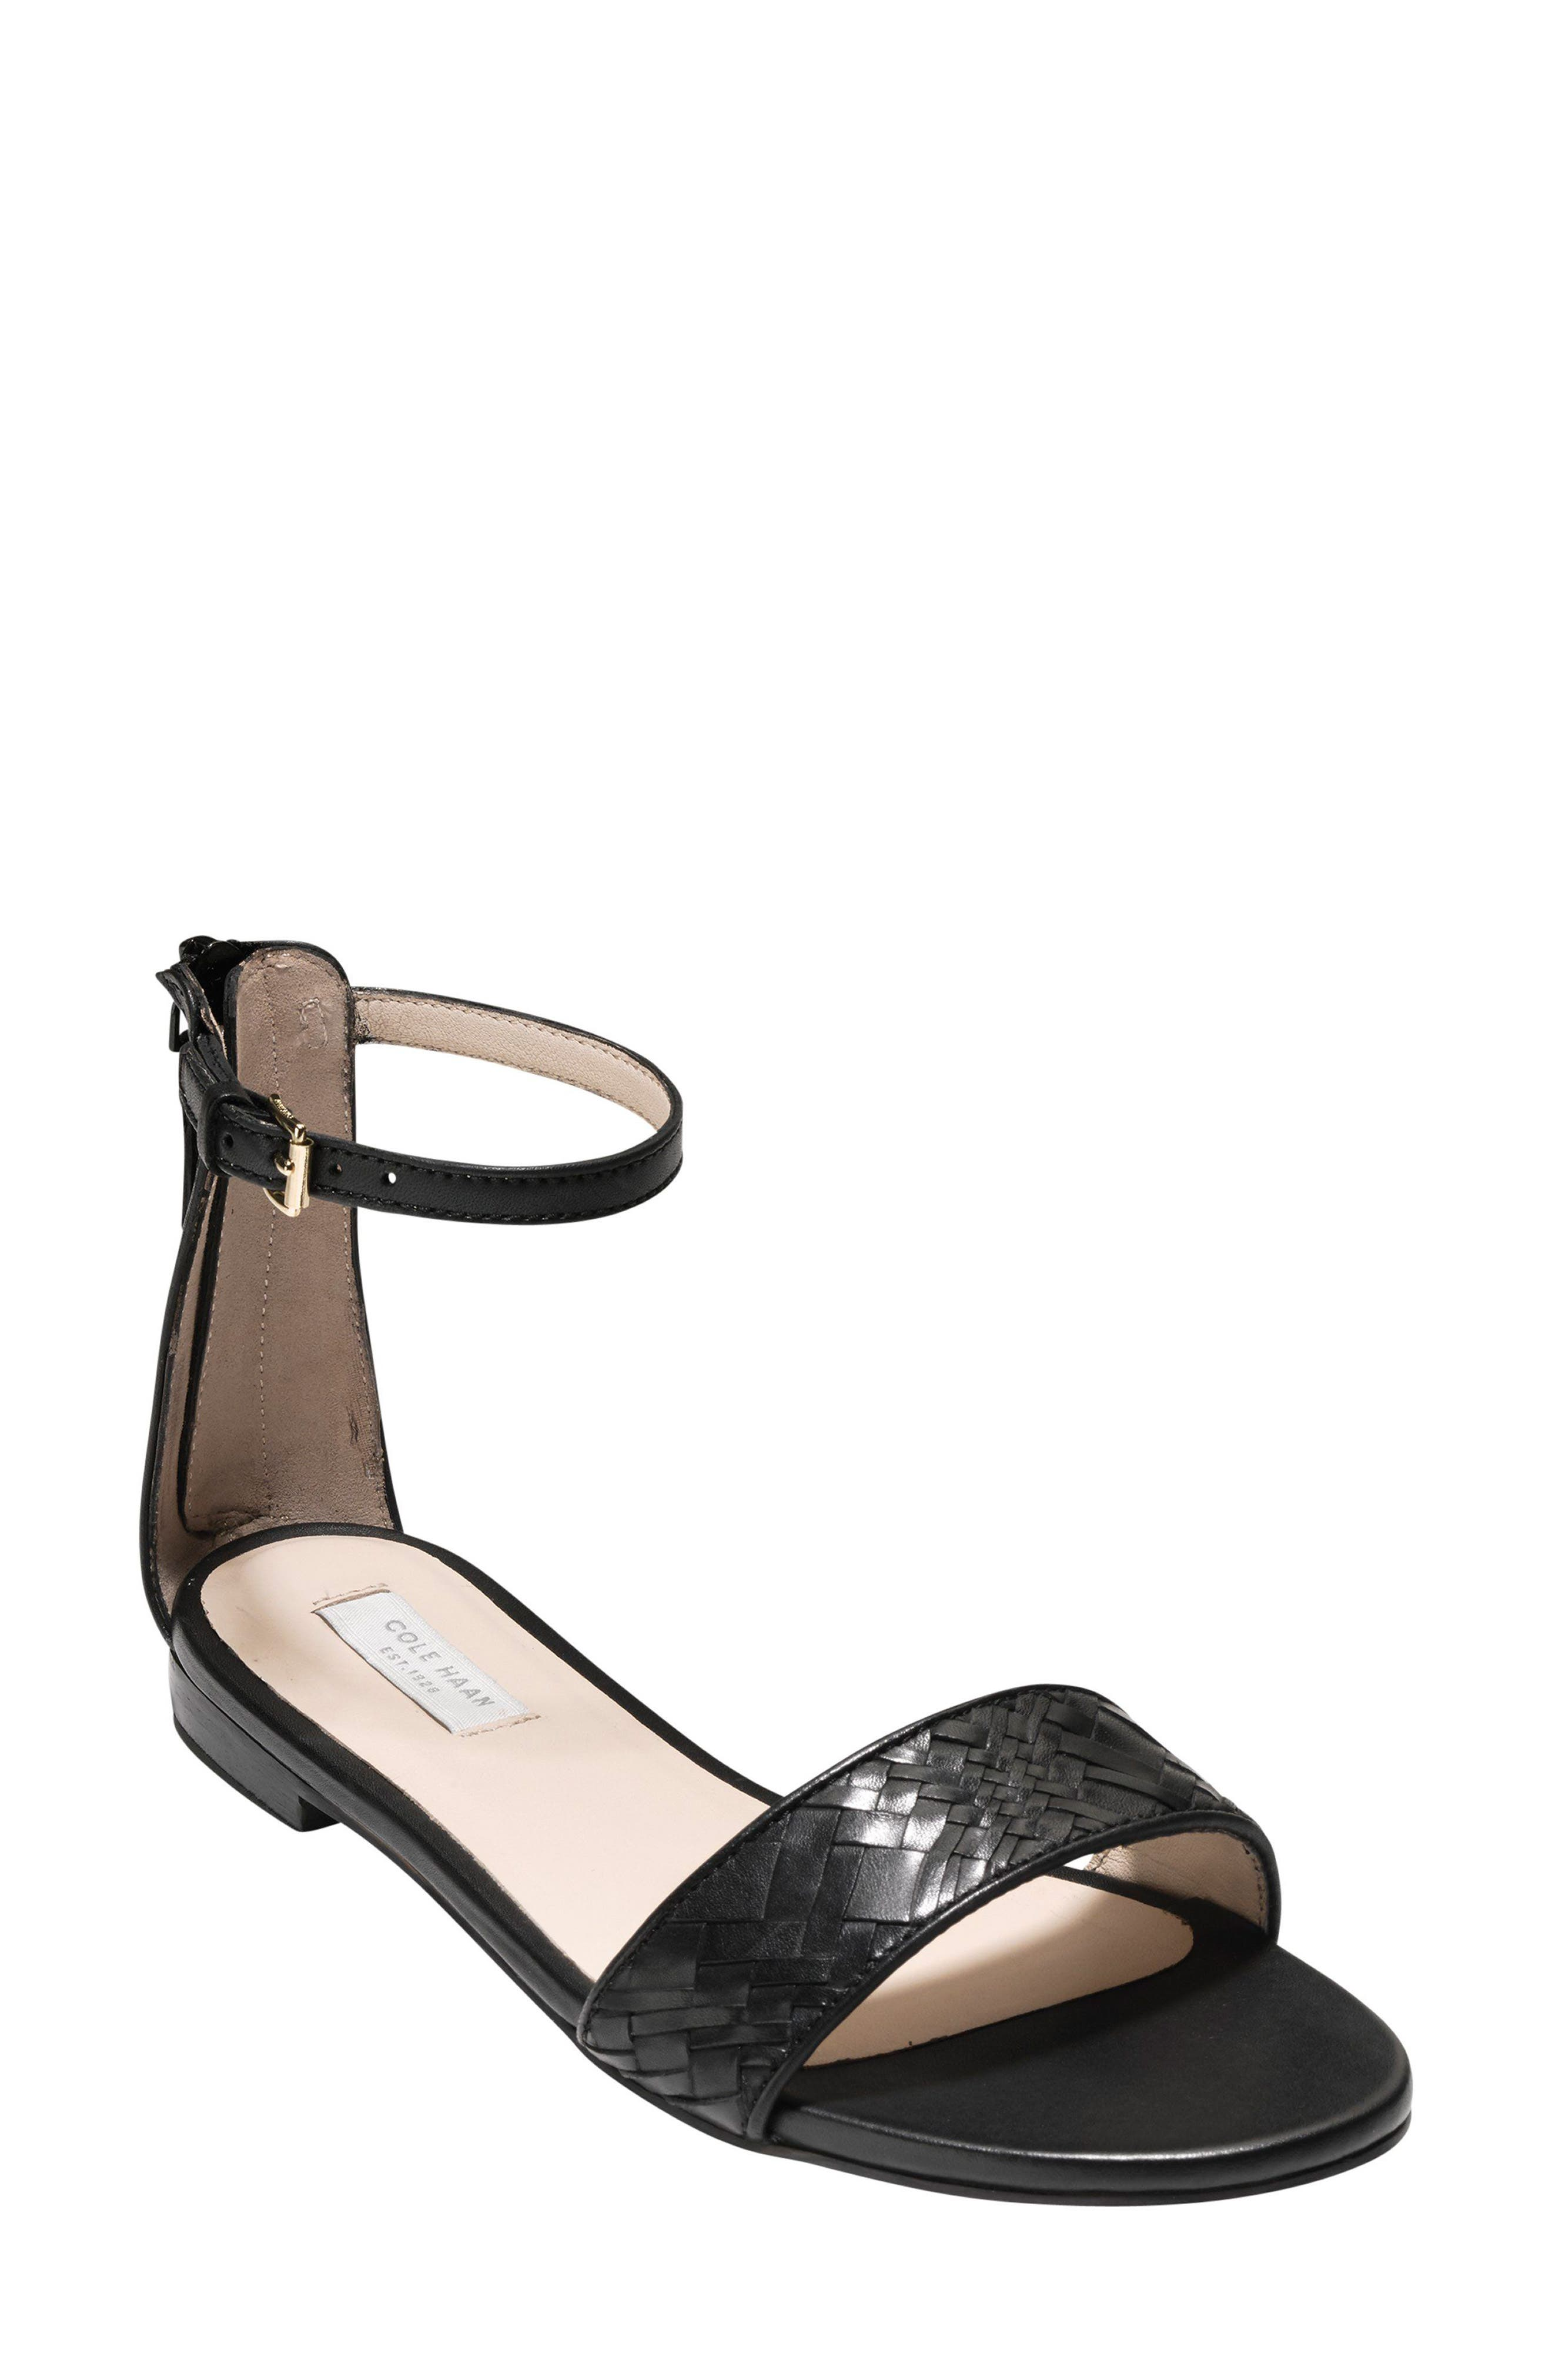 Alternate Image 1 Selected - Cole Haan Genevieve Sandal (Women)